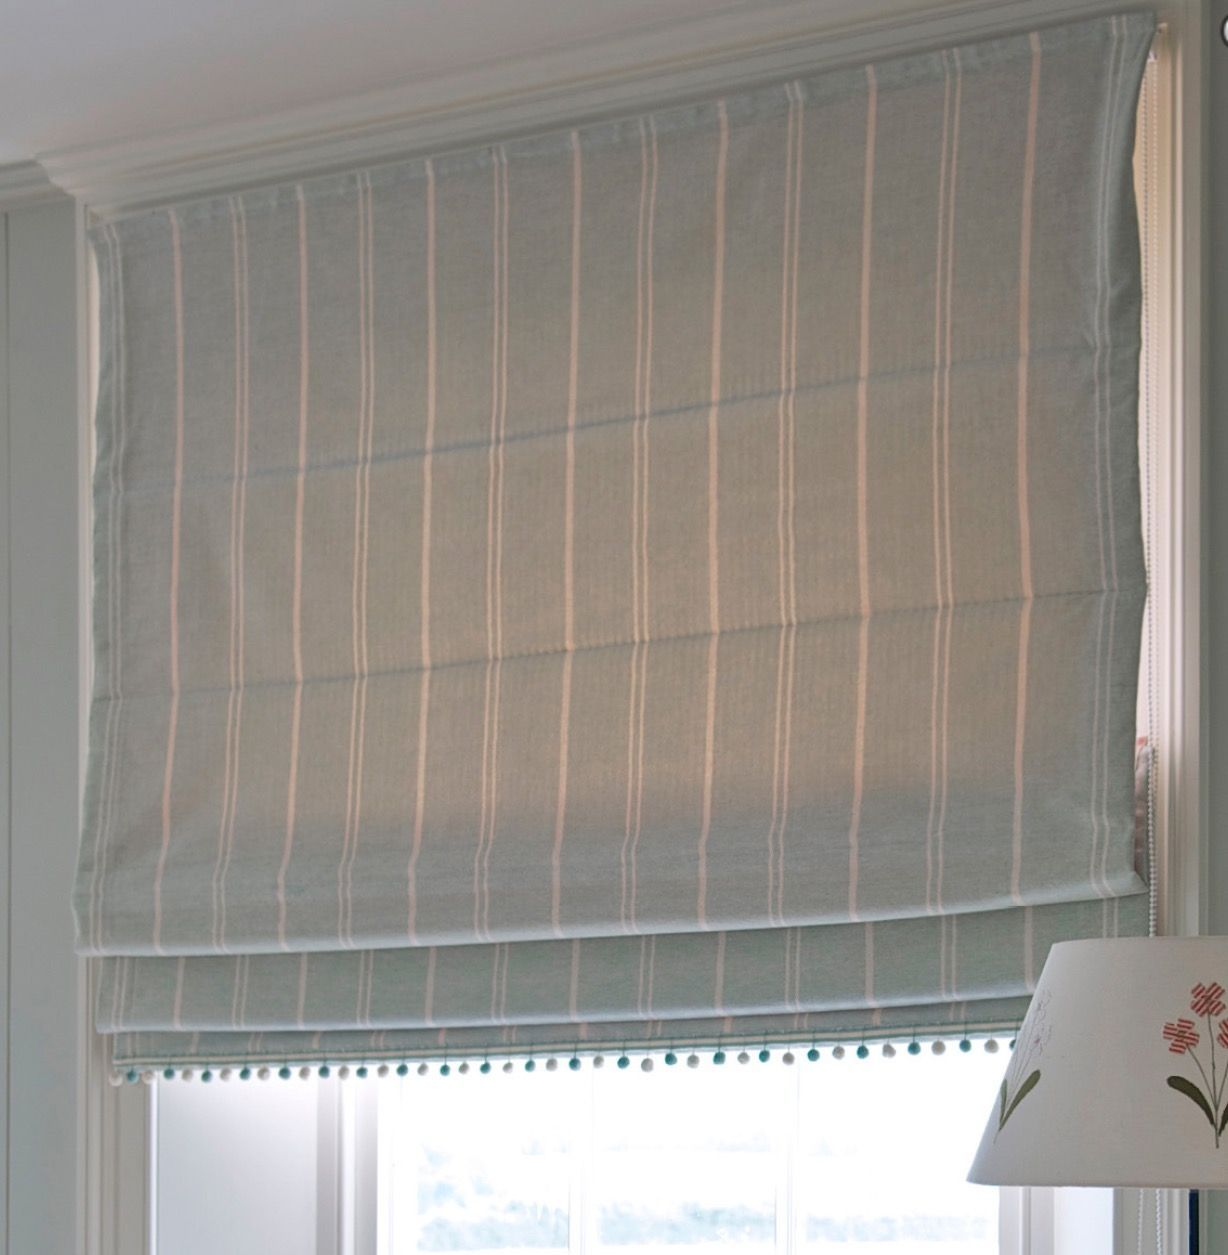 Simple And Stylish Tricks Can Change Your Life: Kitchen Blinds Roman Bamboo Blinds  Lowes.Mini Blinds Ideas Modern Blinds Country Style.